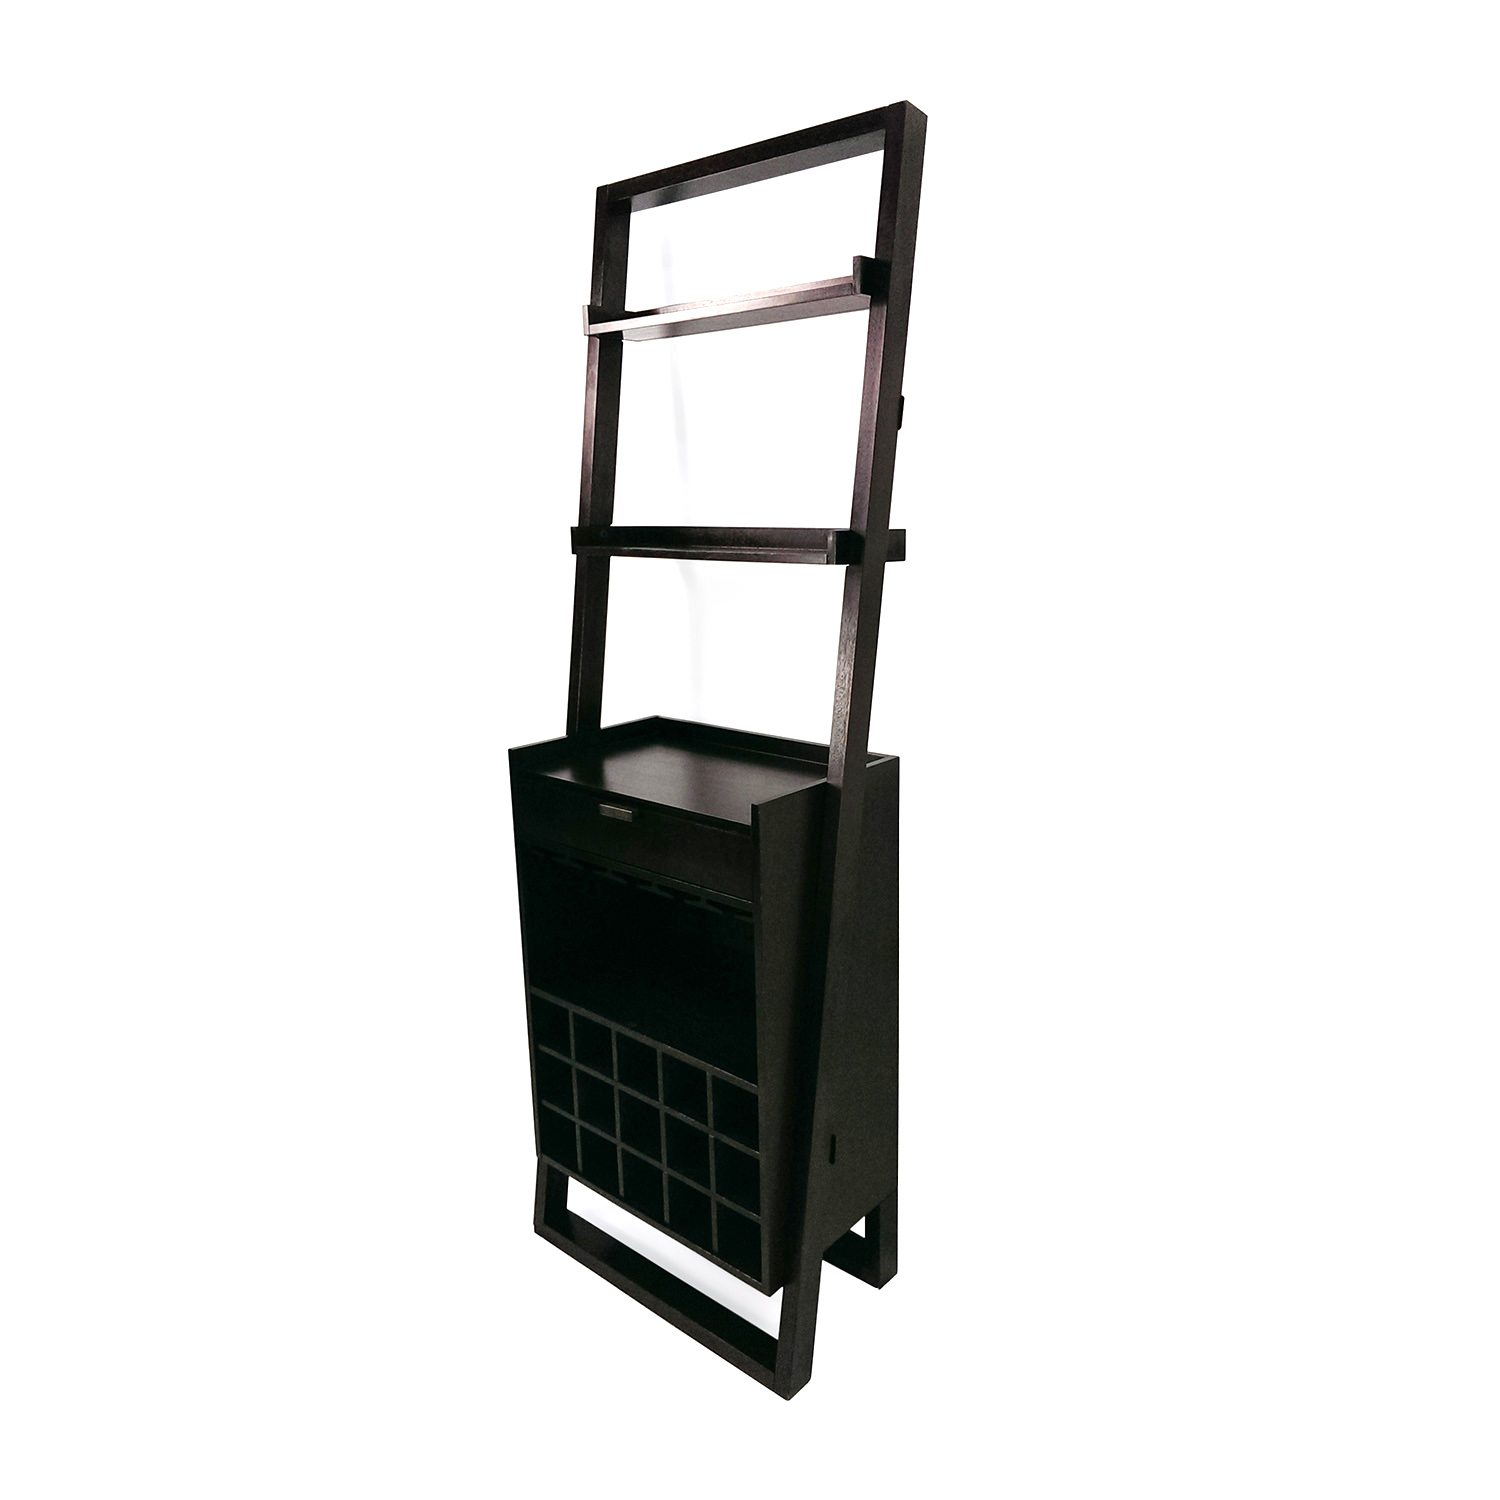 Crate and Barrel Crate and Barrel Leaning Wine Rack Bookcases & Shelving